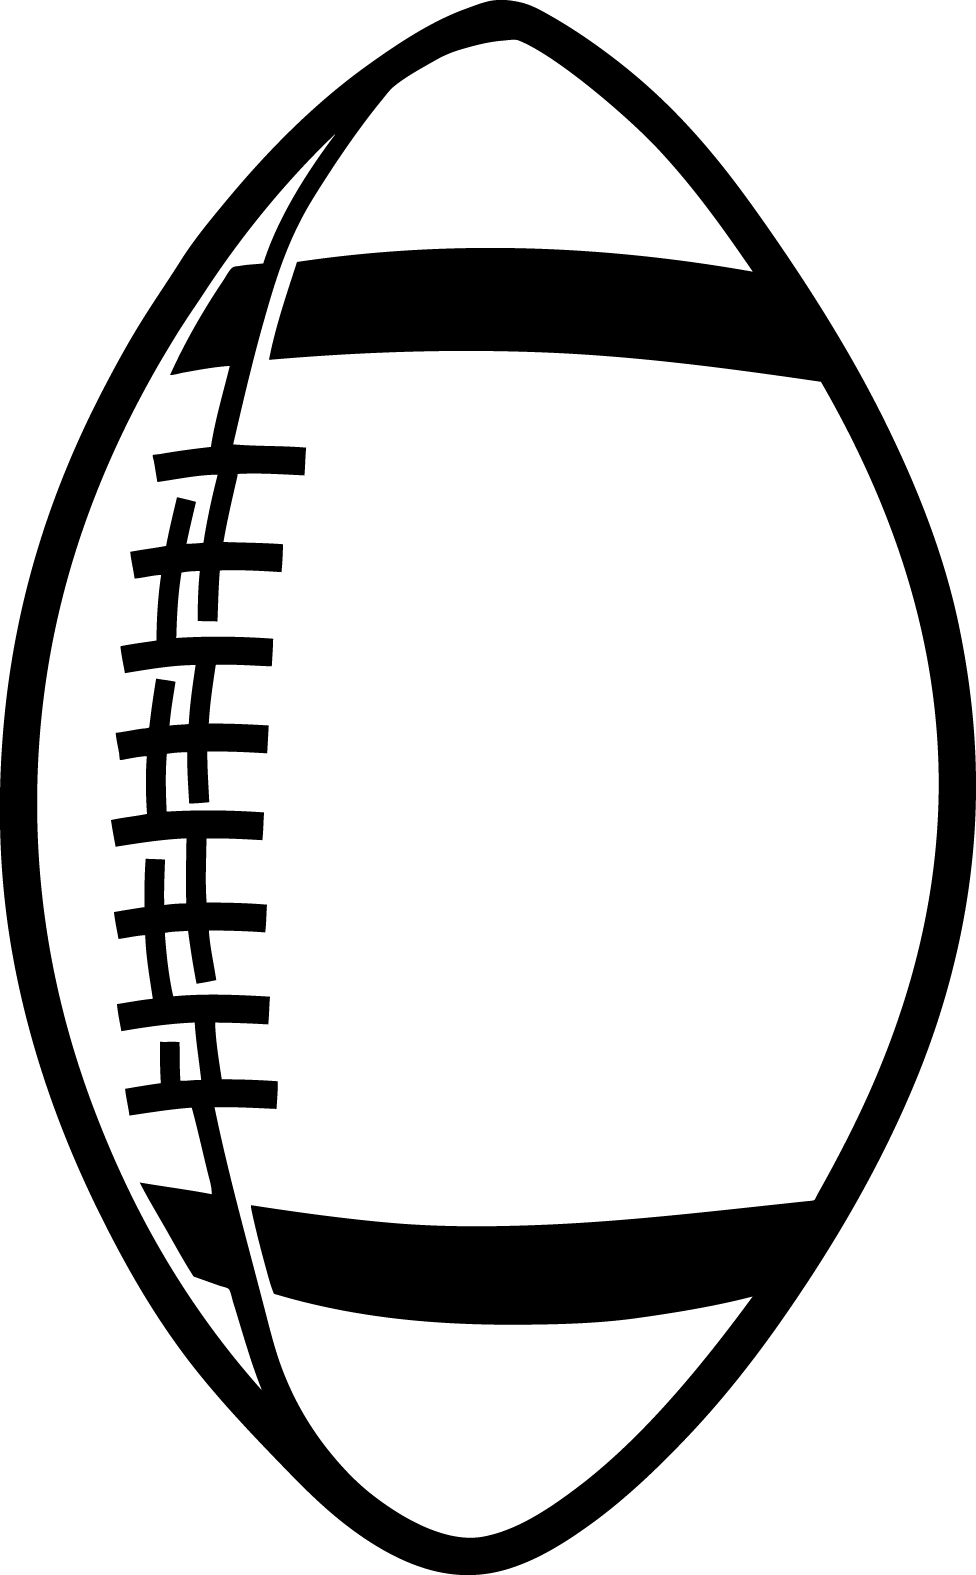 Hawk football clipart vector black and white Dragonfly Outline Clipart | Clipart Panda - Free Clipart Images ... vector black and white